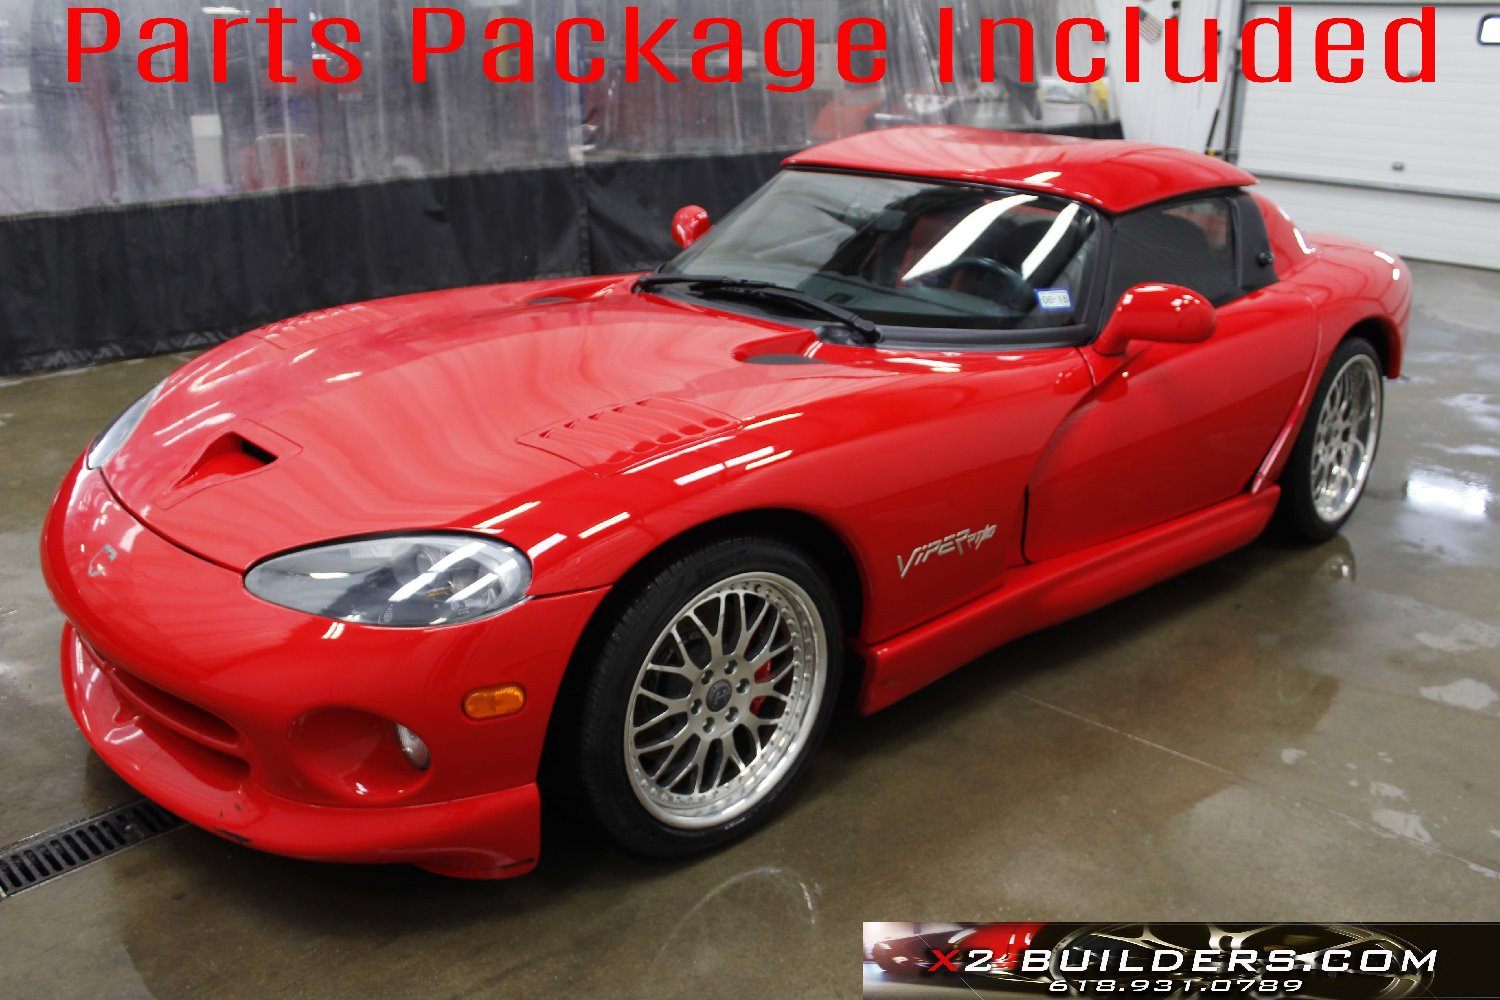 2000 Dodge Viper RT/10 Supercharged